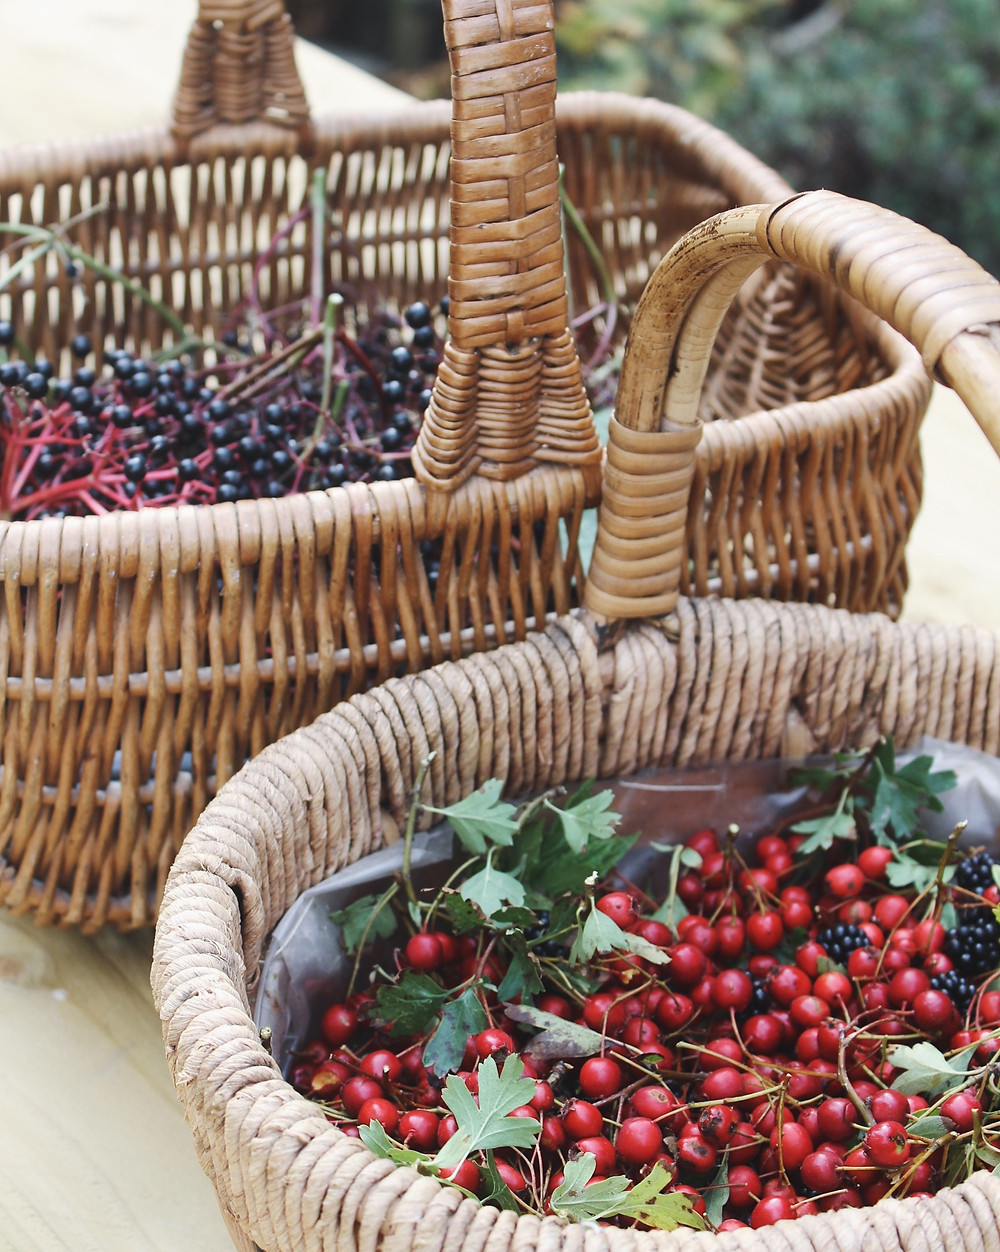 Foraged autumn herbs; Elderberries, Hawthorn and Blackberries